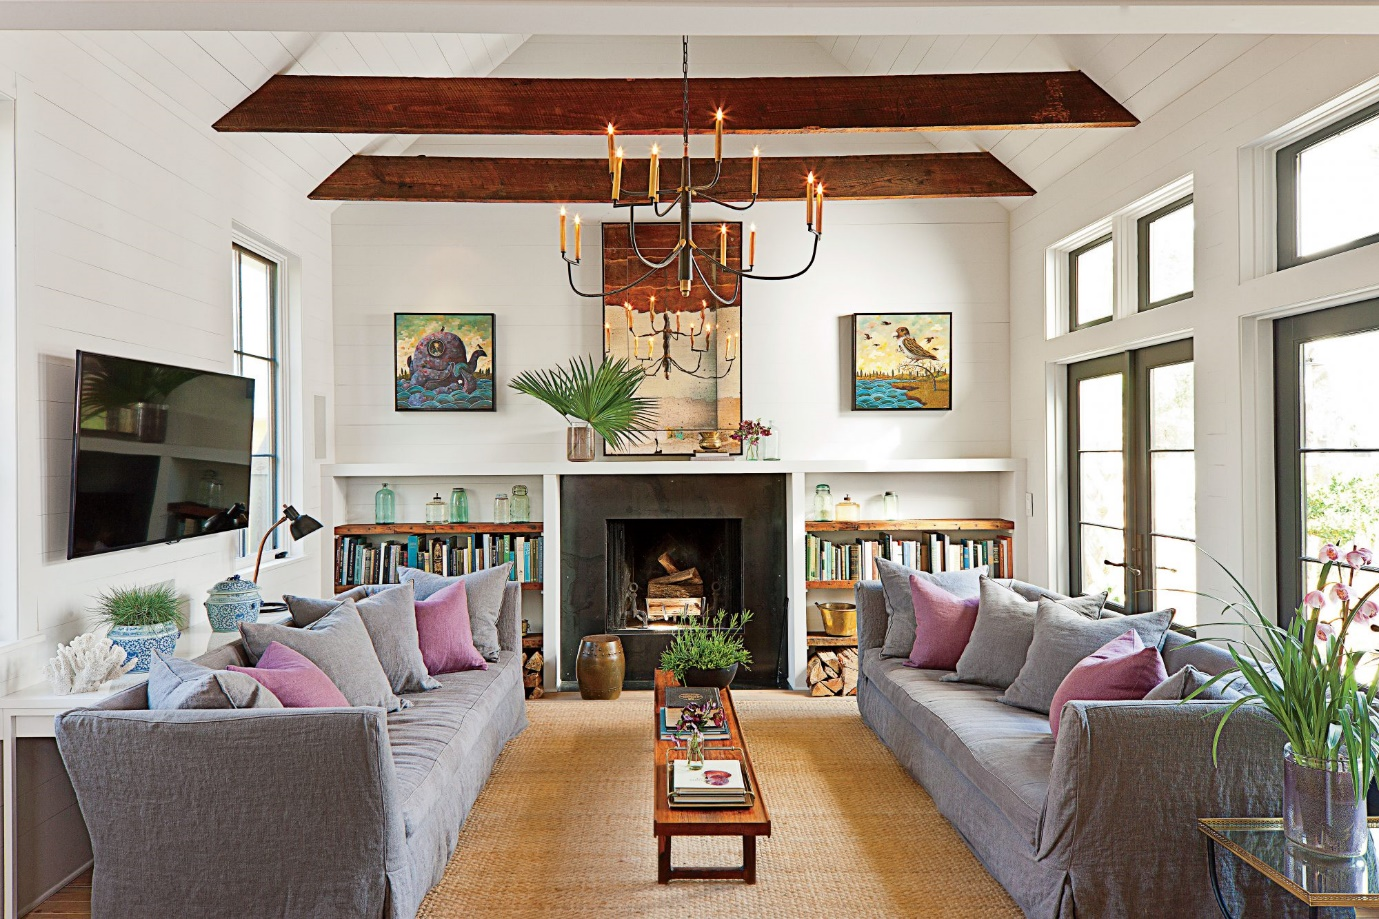 living room with fireplace at one end